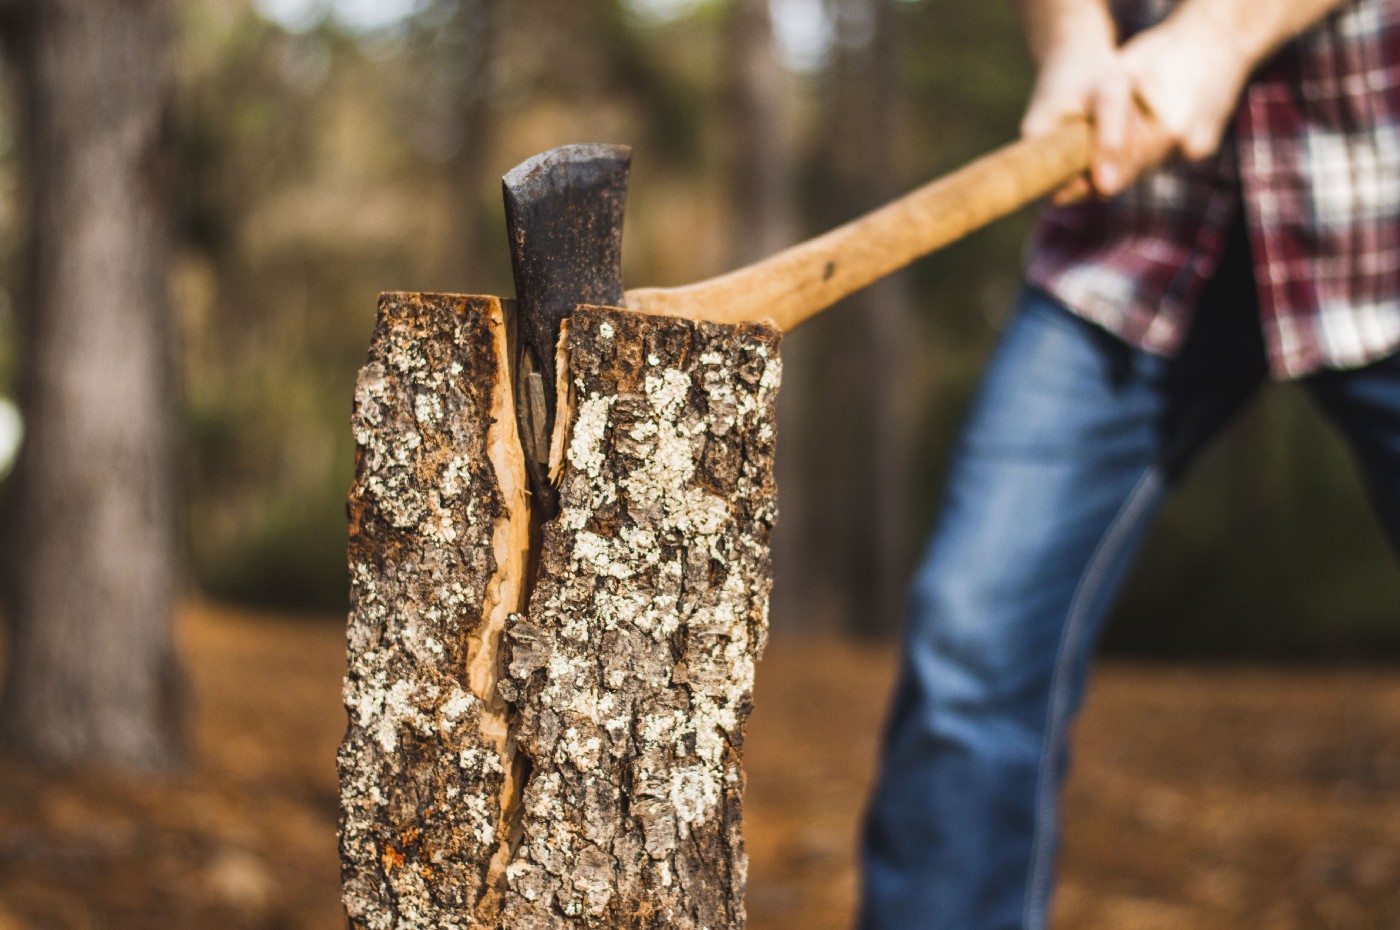 Someone hacking away at a tree stump with an axe